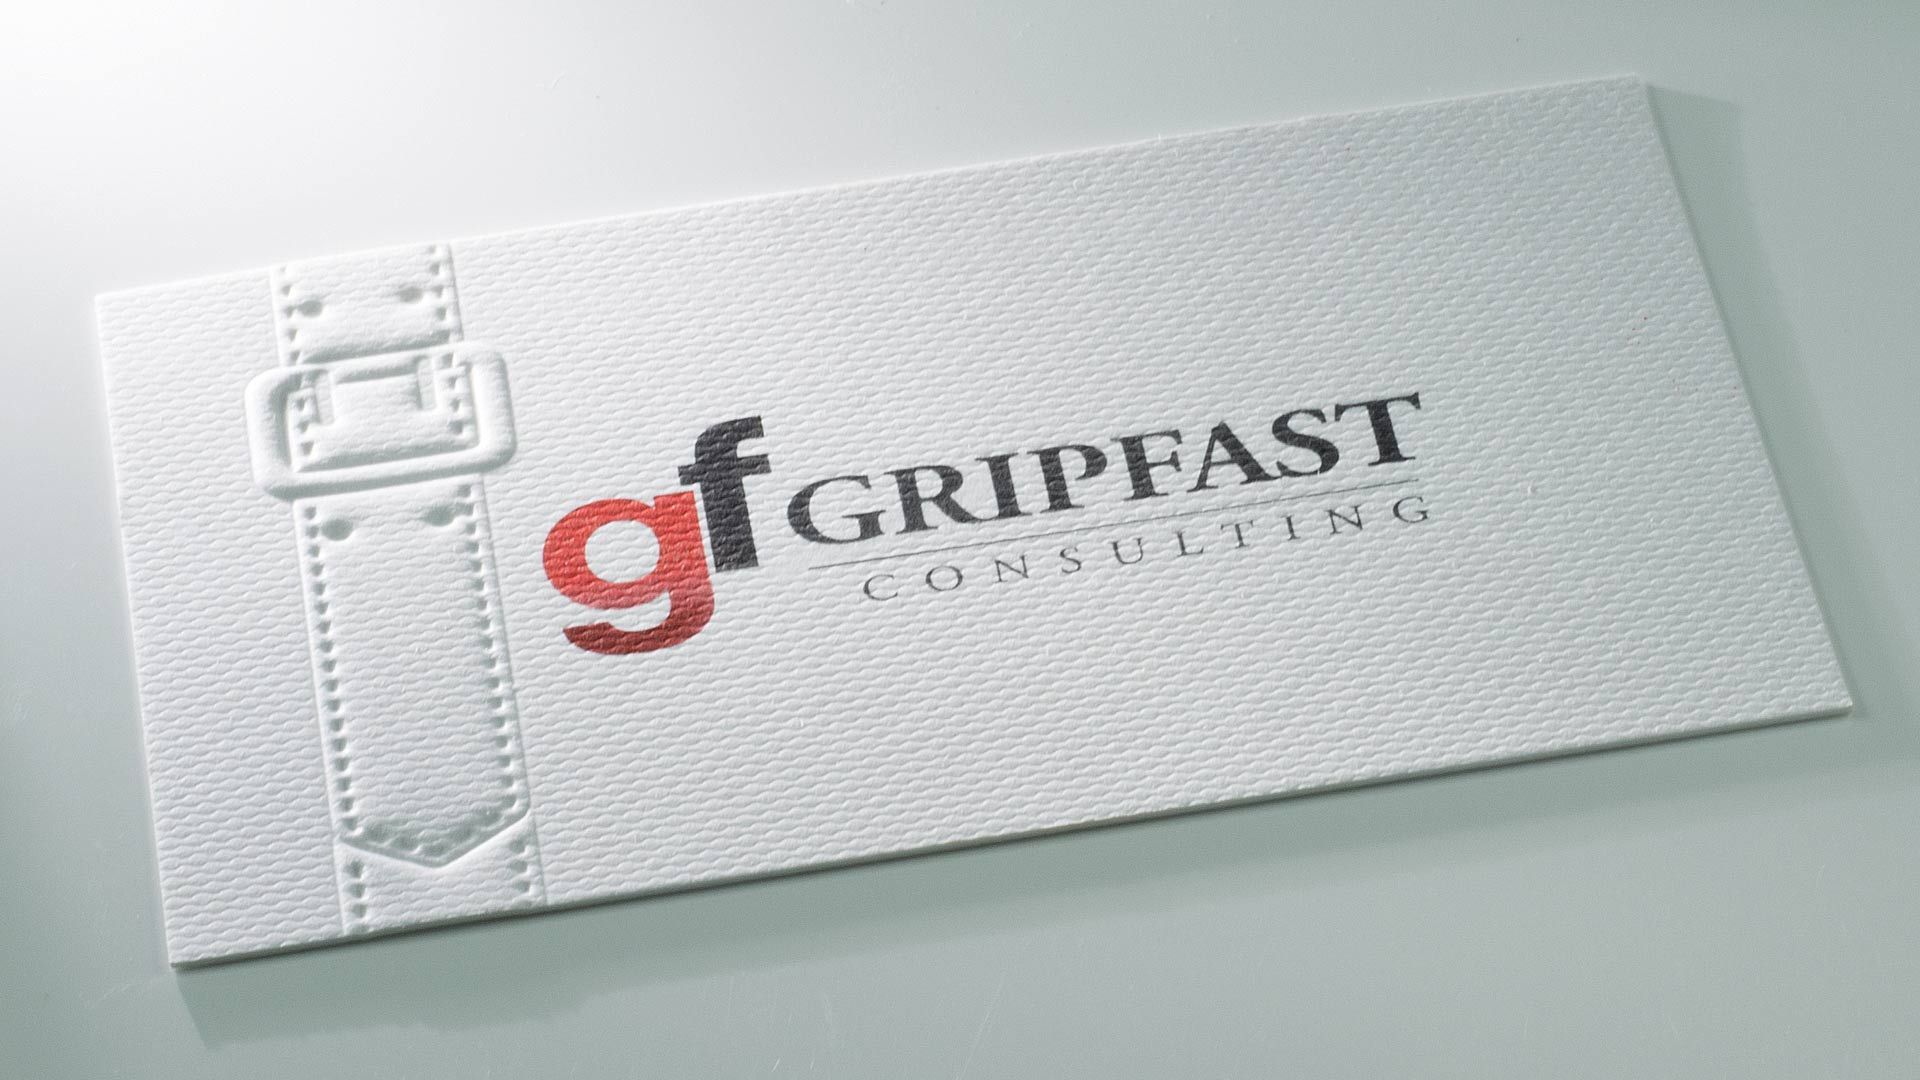 Quality embossed business cards letter press printing printers quality embossed business cards letter press printing printers textured stock quality samples sale cheap business cards reheart Choice Image